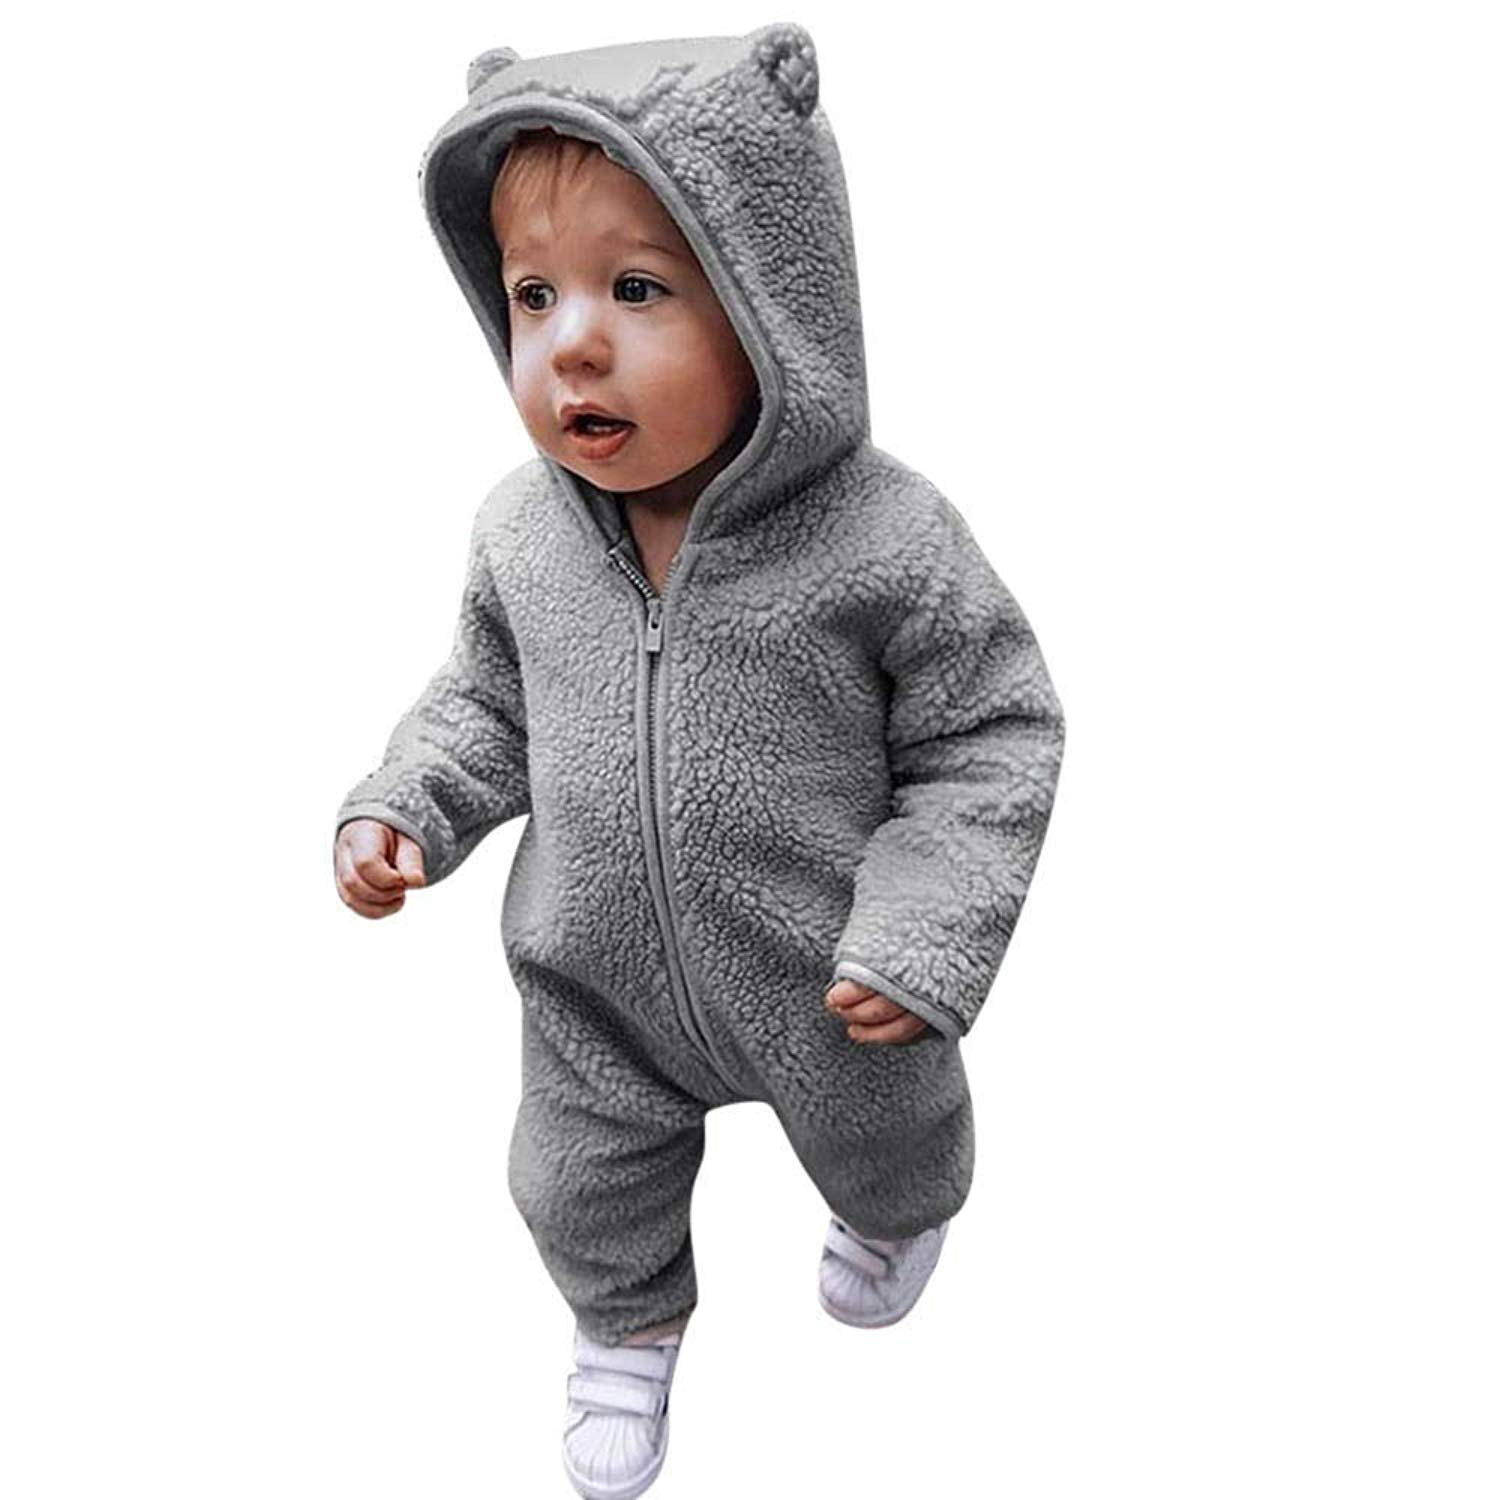 Toddler Infant Baby Girls Boys Cartoon Hooded Pajamas Romper, Warm Fluffy Plush Zipper Jumpsuit Sleepwear Outfits Clothes